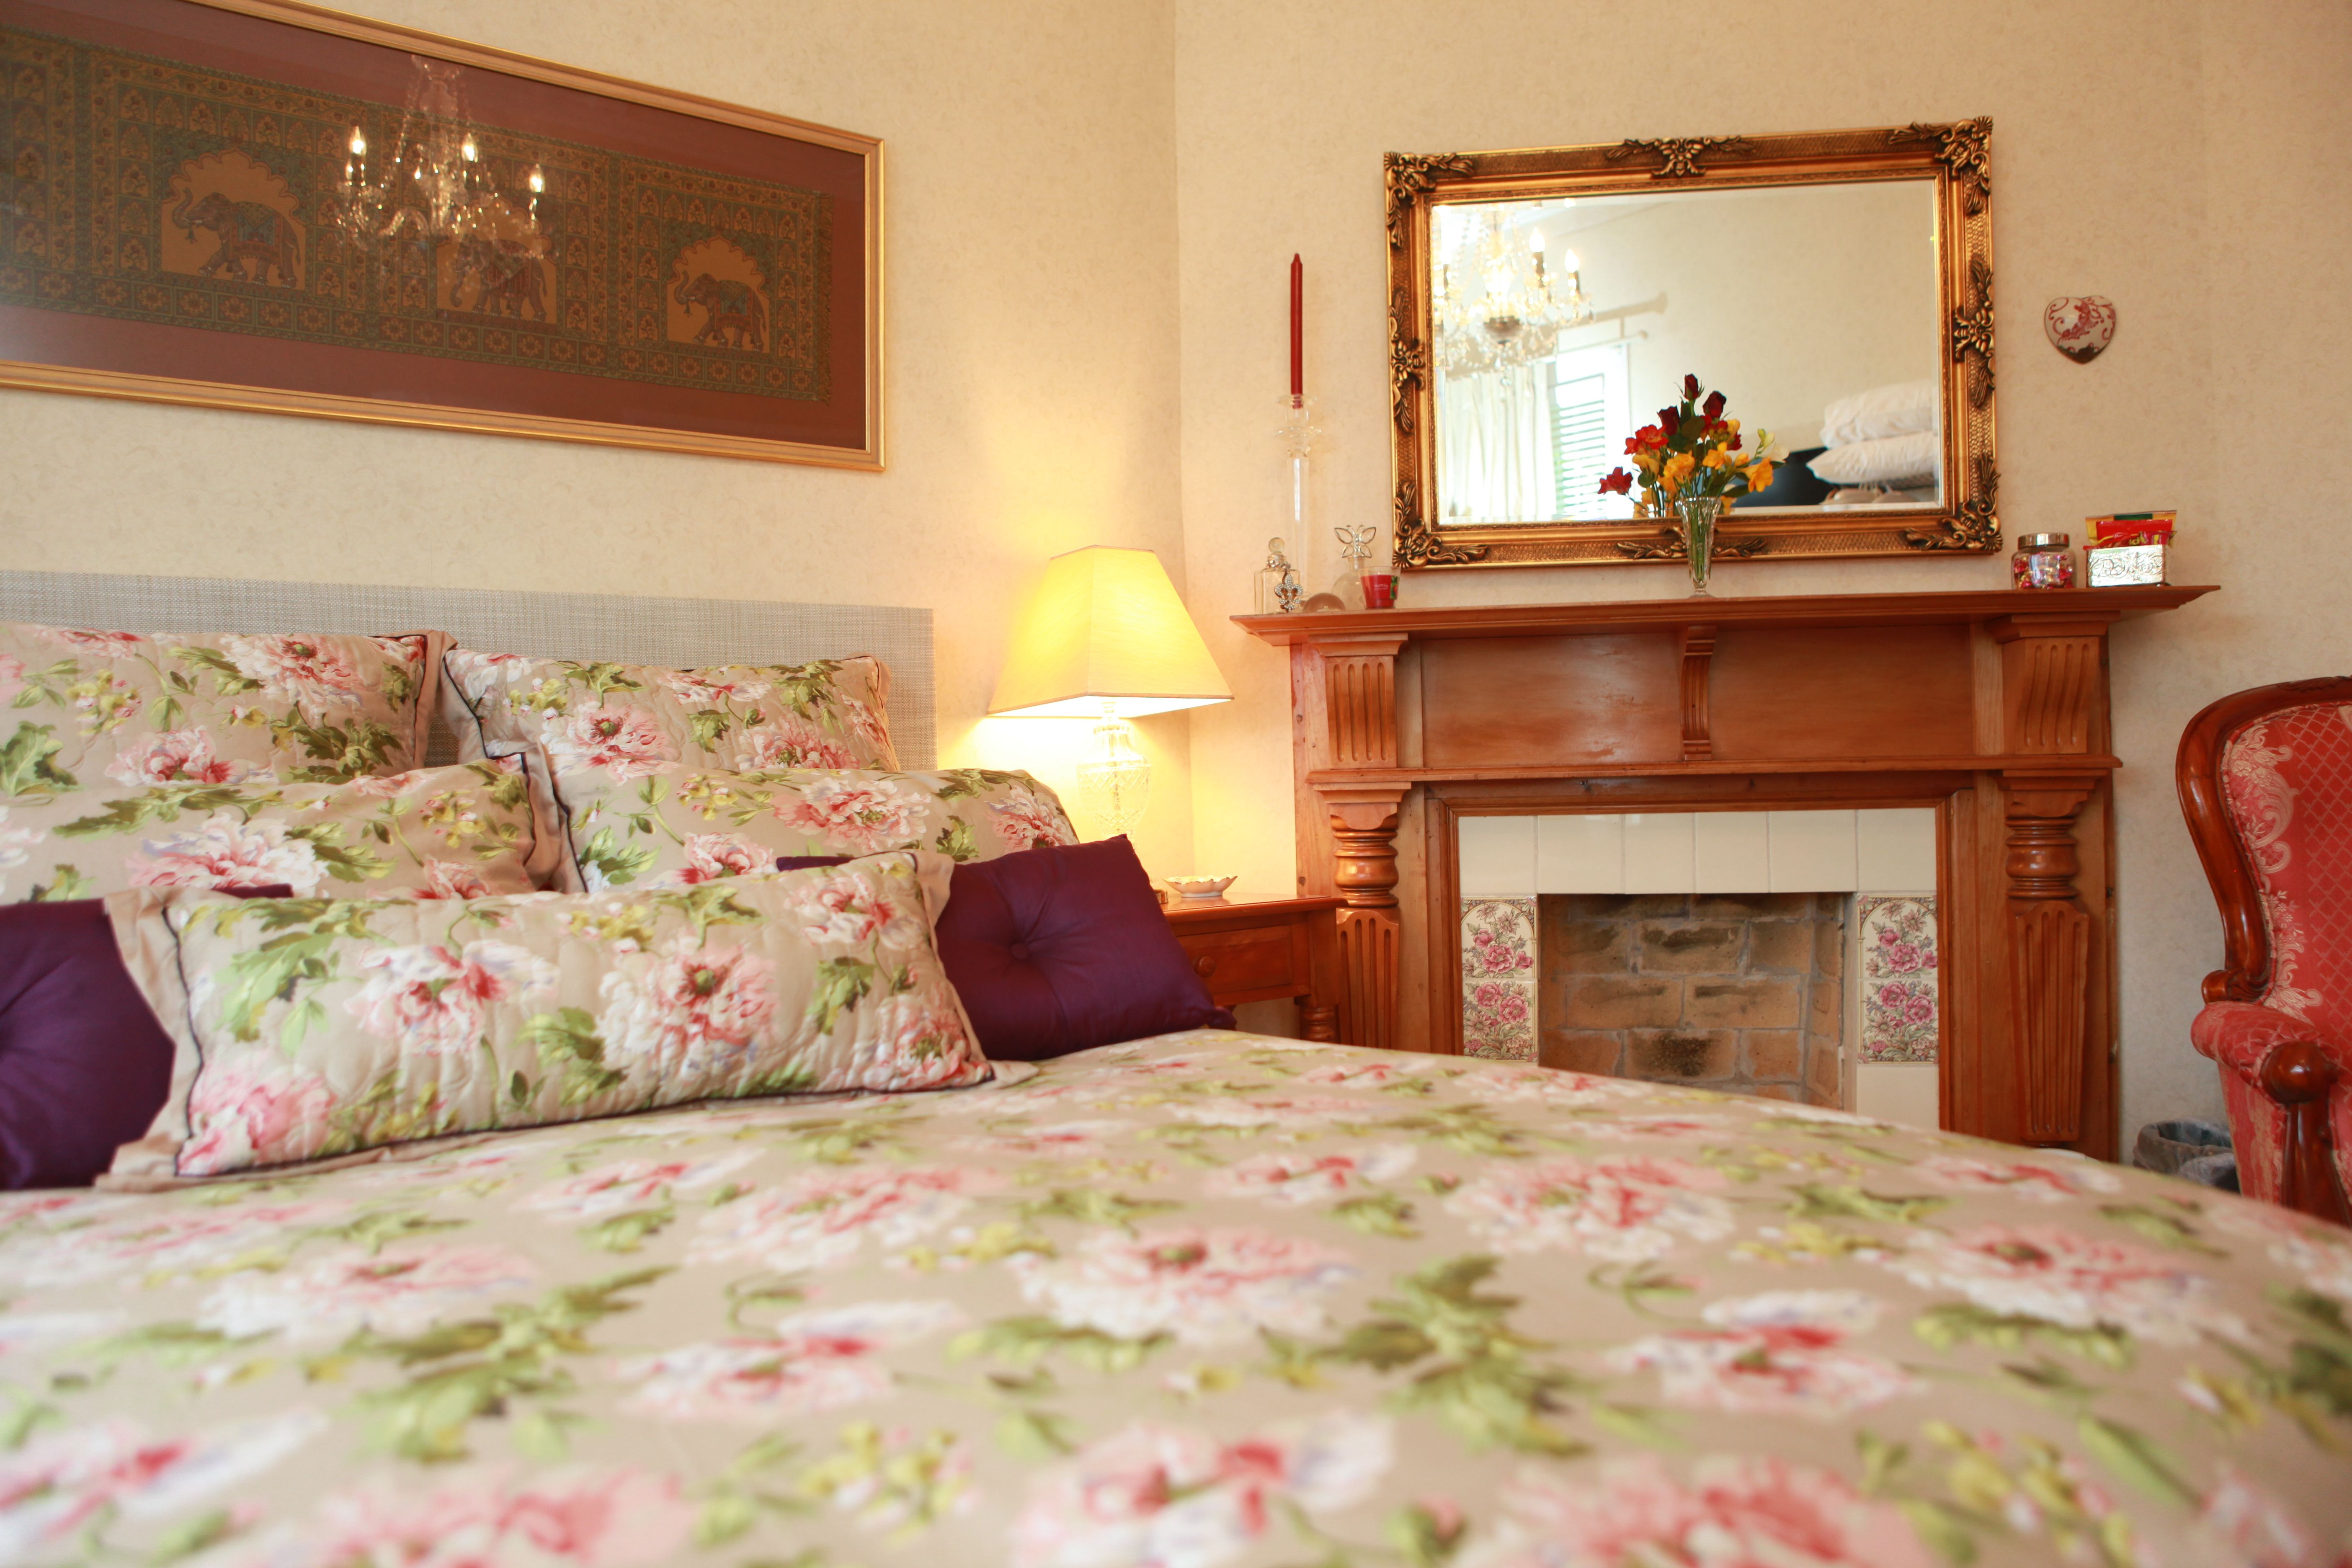 Relax in our Premiere Queen Size Room with fireplace and